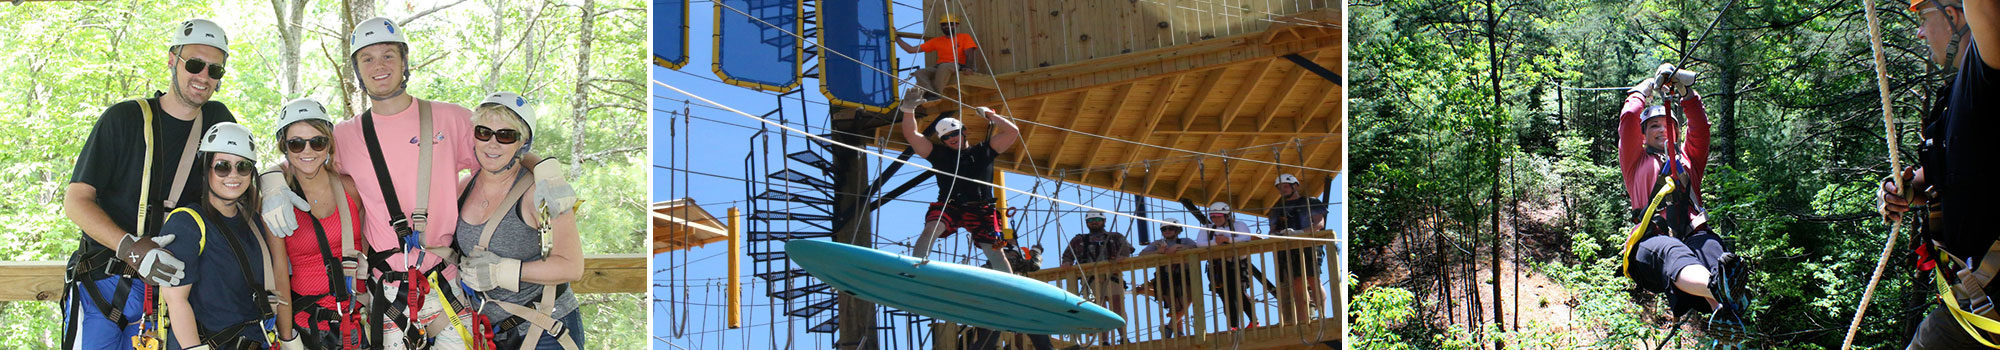 ZipLine Canopy Tours Vs Adventure Park